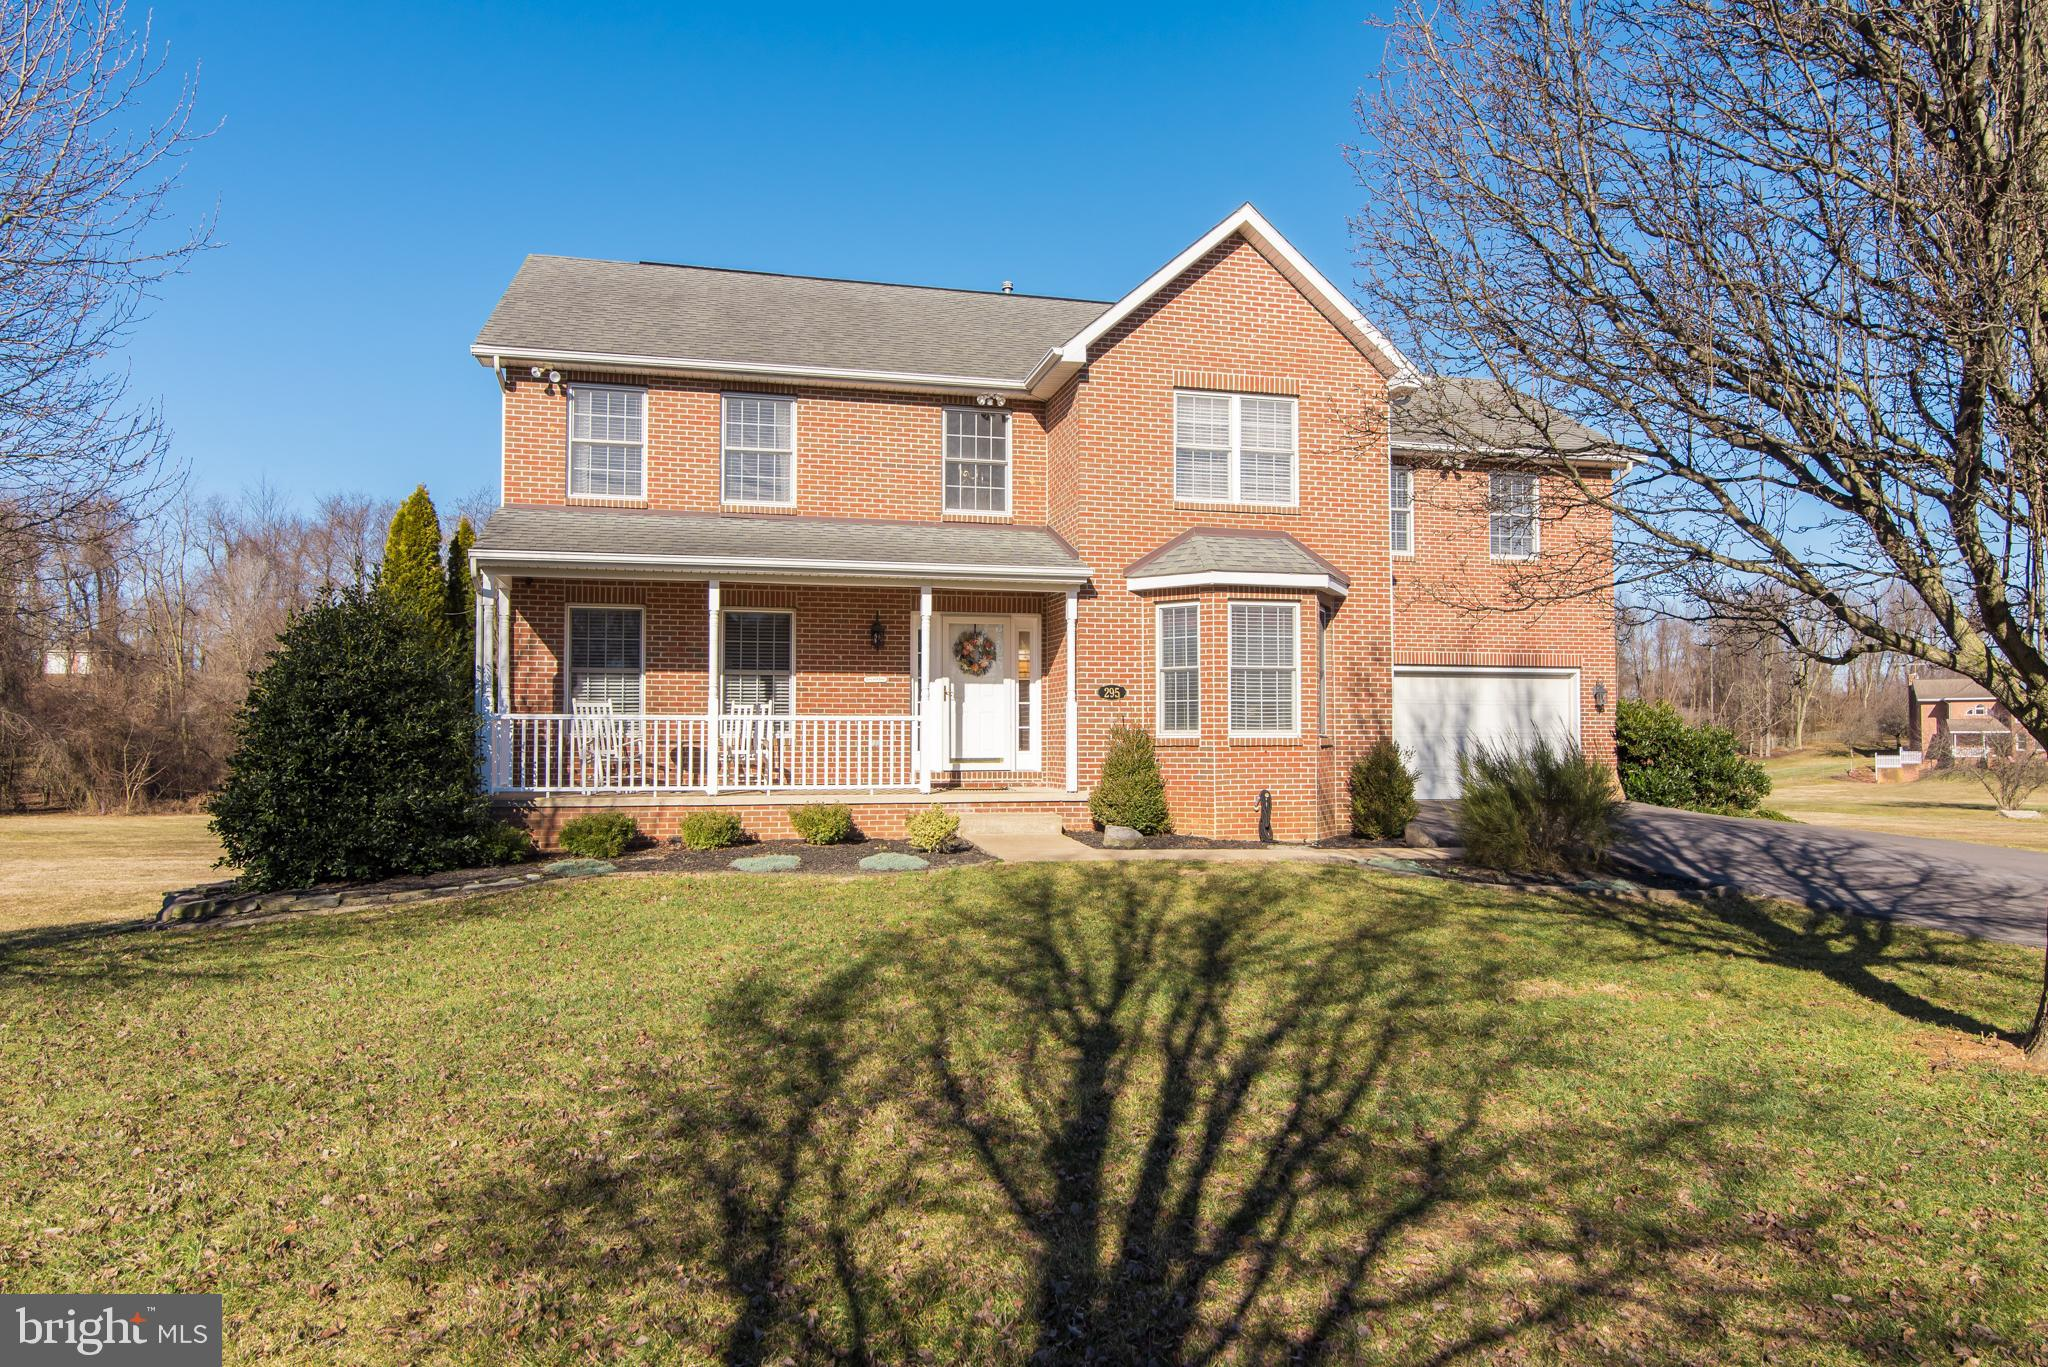 Charming brick facade colonial on almost 5 acres at the end of a cul-de sac in a quiet secluded neig